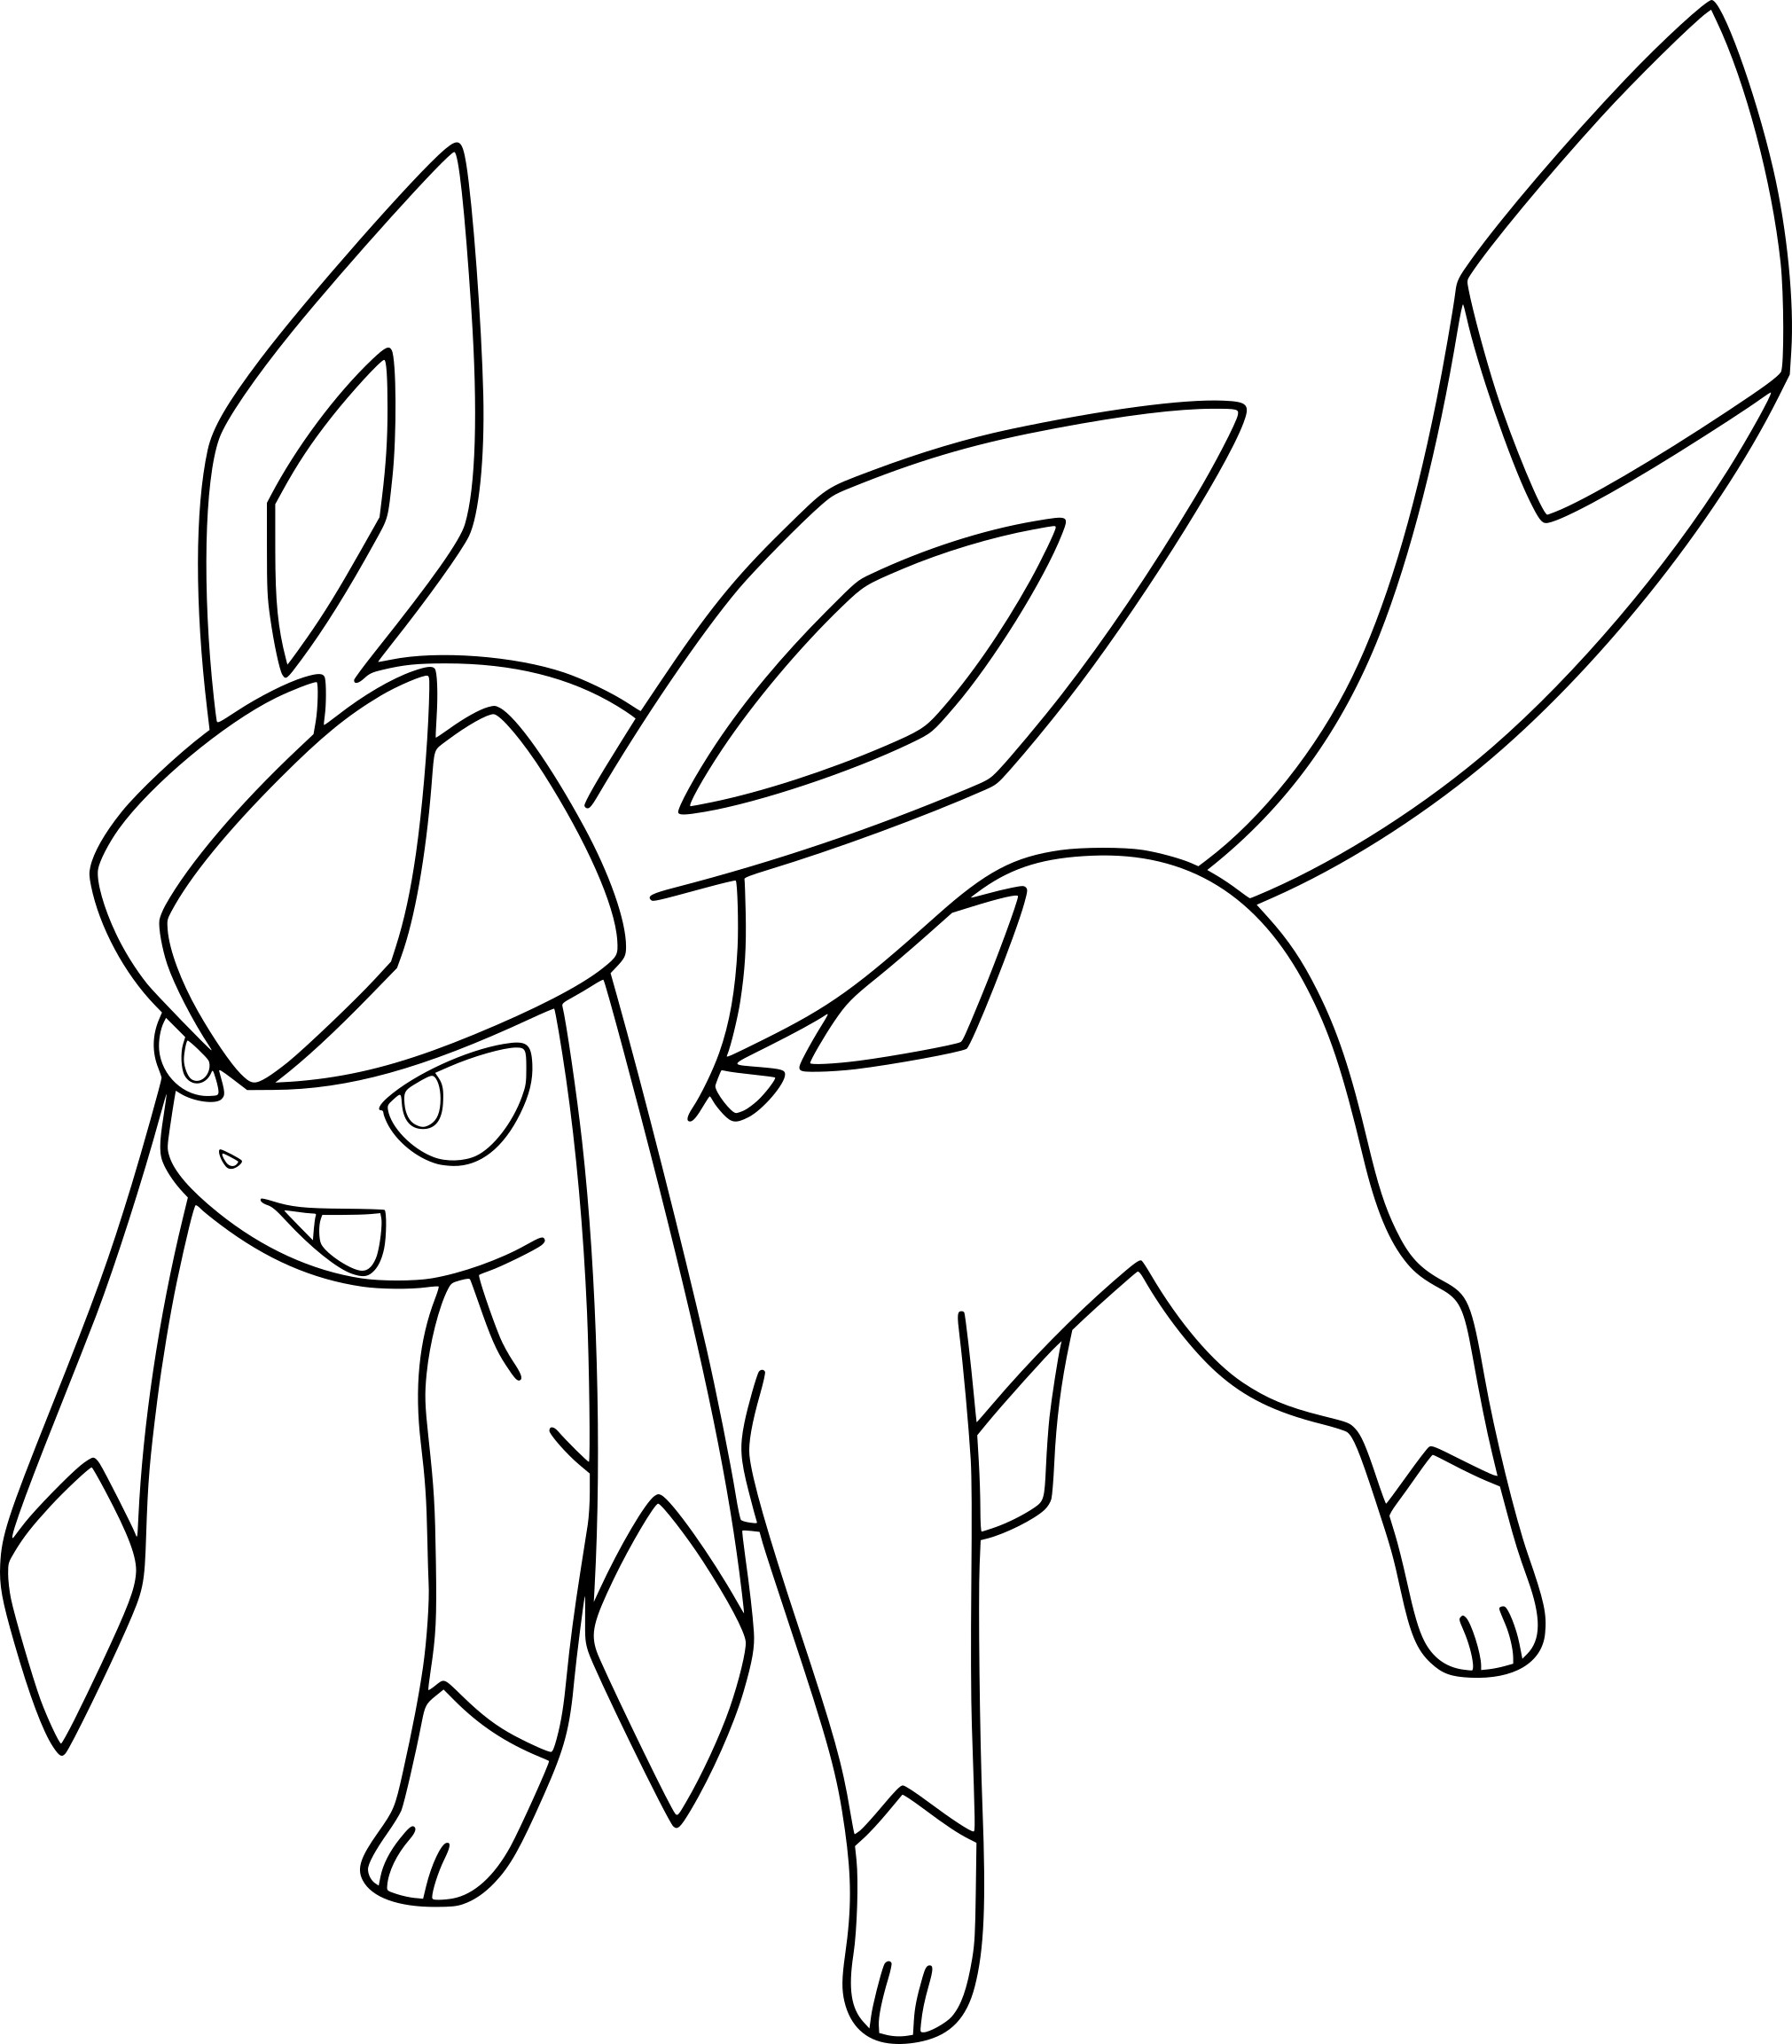 eeveelutions coloring pages - coloriage givrali pokemon